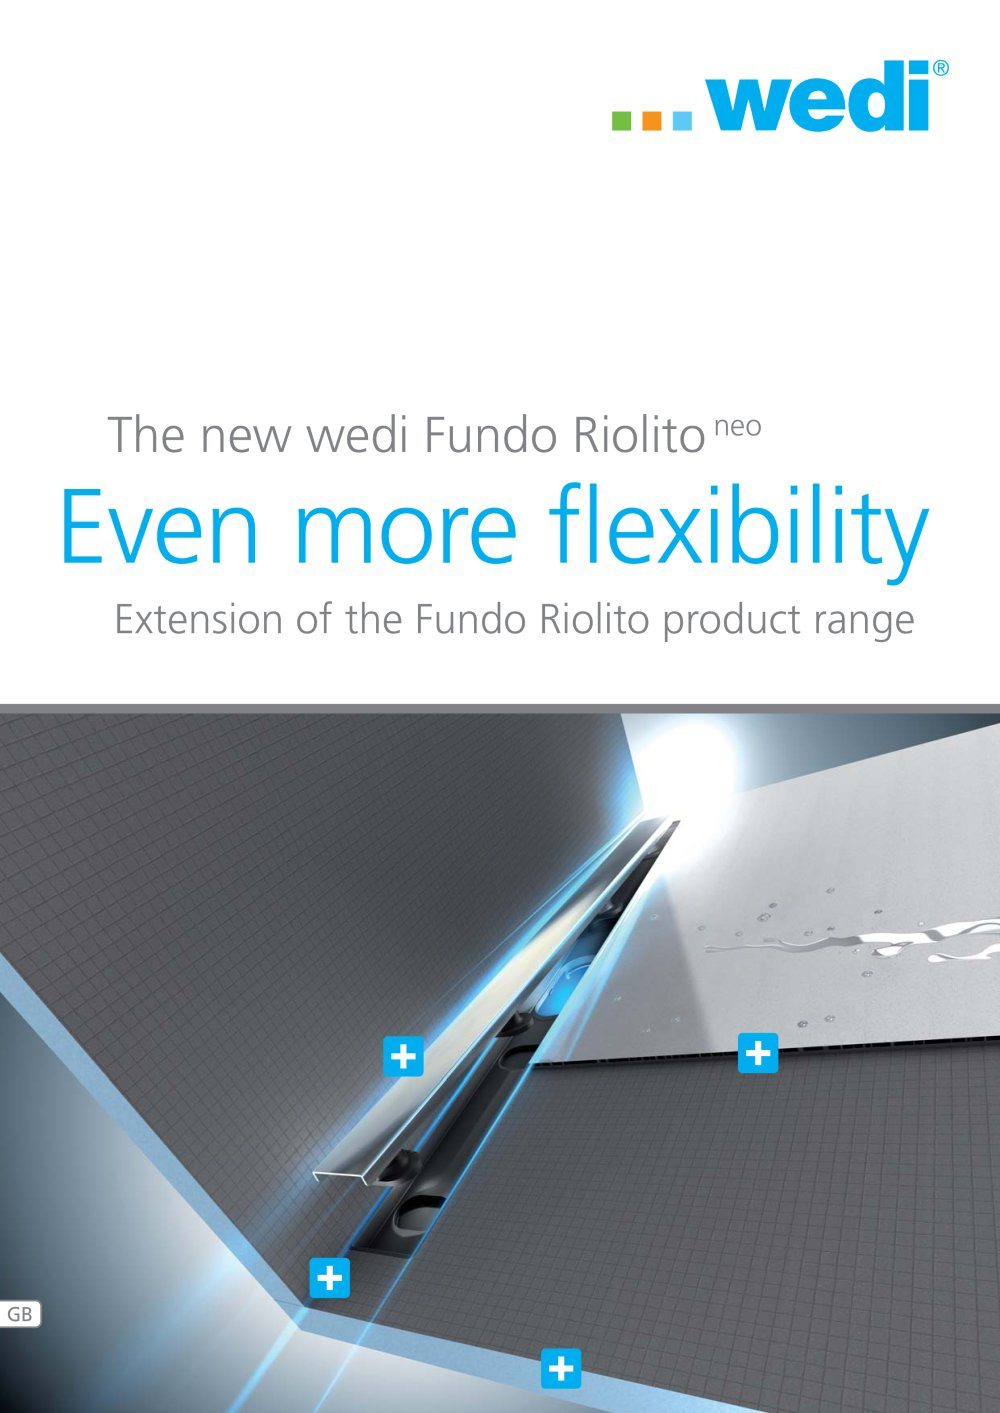 Wedi Emsdetten fundo riolito neo wedi gmbh pdf catalogues documentation